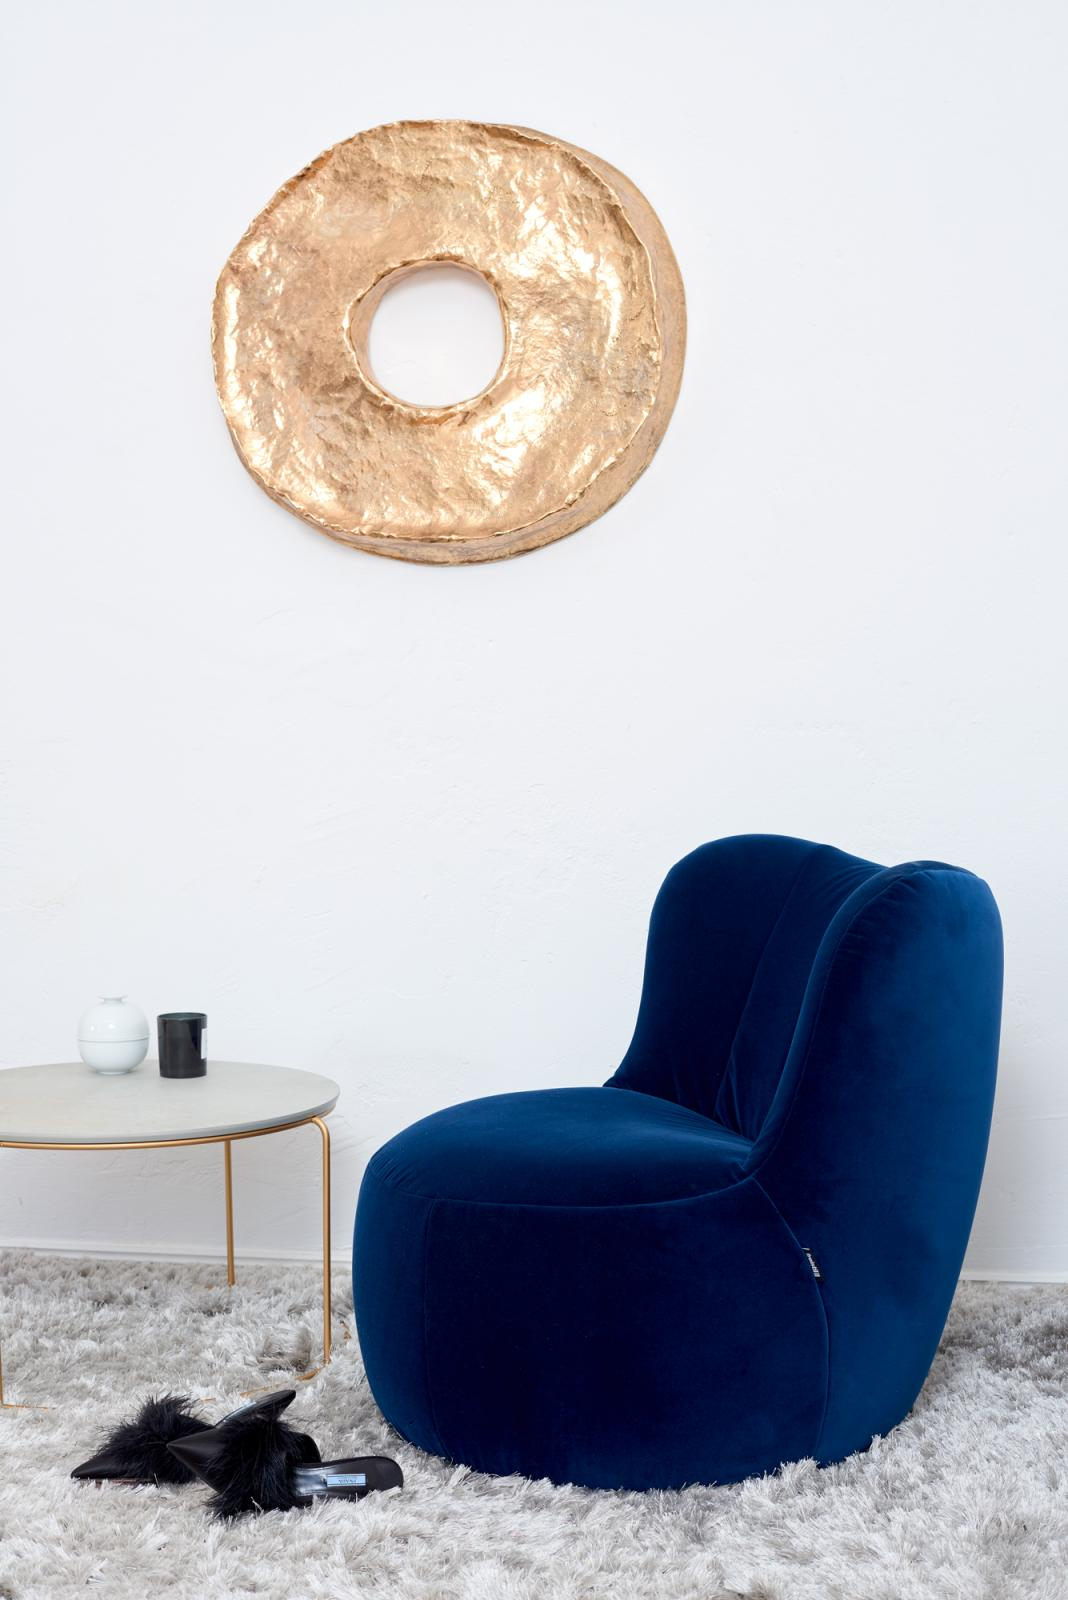 Couchtisch Design Rolf Benz Interior | The Modern Salon Chair | The Random Noise